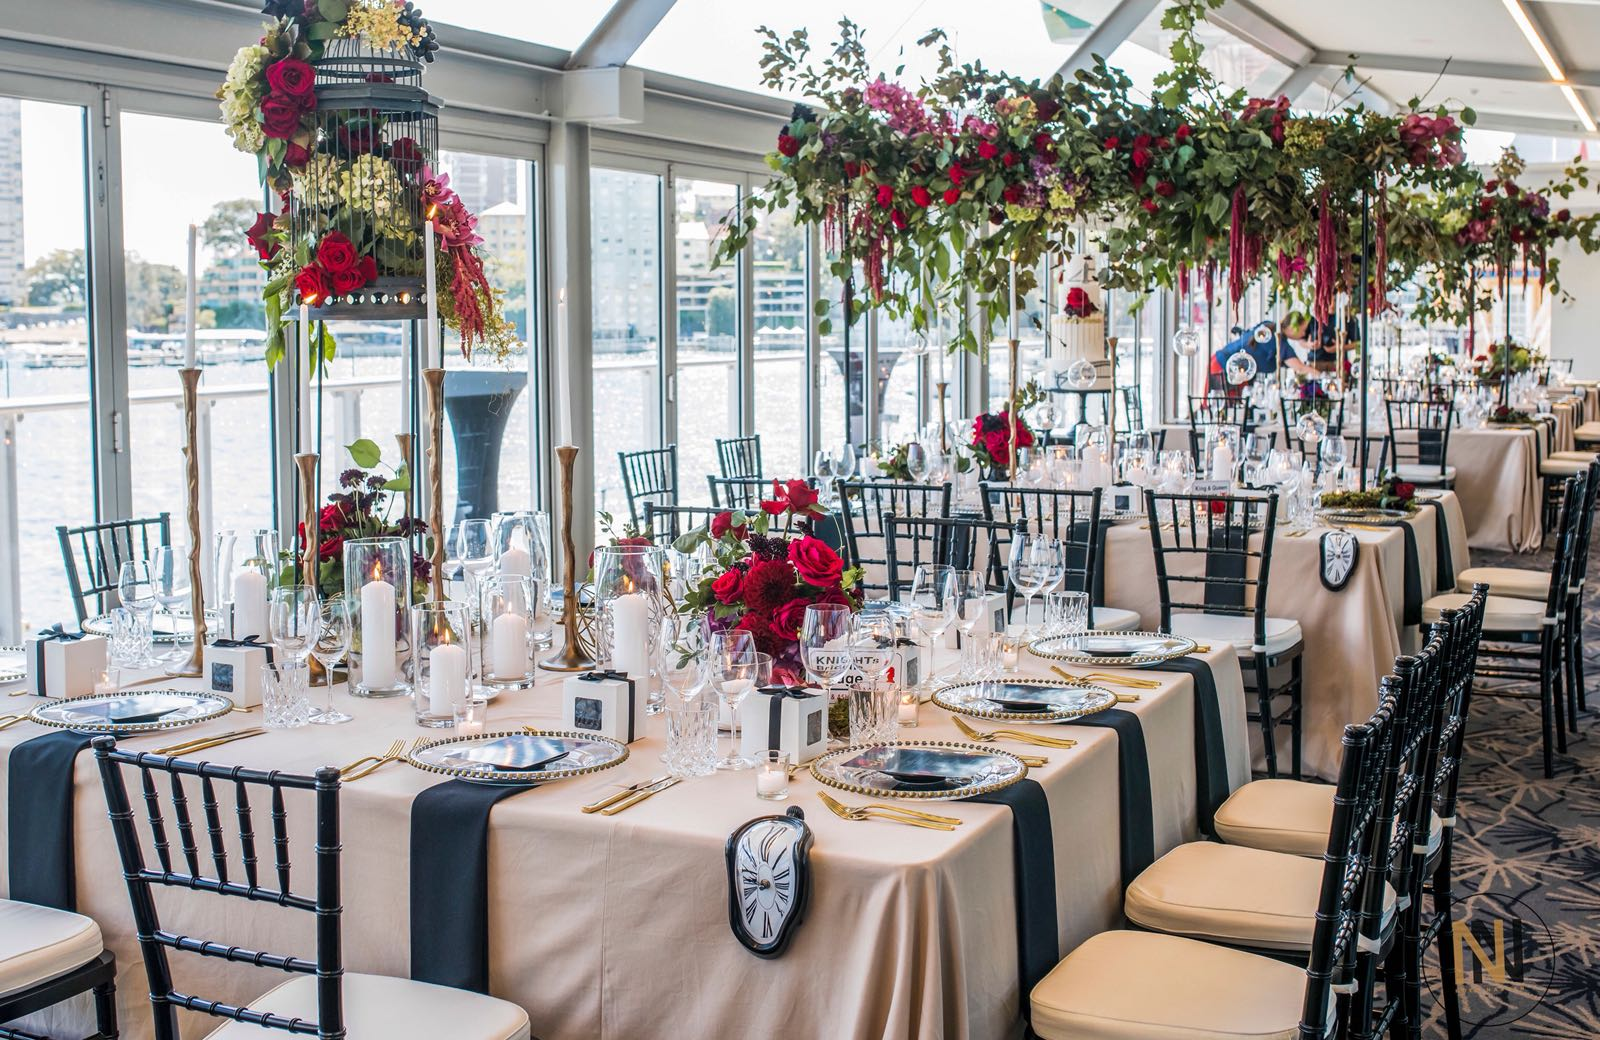 love, hope, flowers, lhflowers, wedding flowers, flowers, Sydney, Sydney florist, crystal ballroom, grand ballroom, sunset room, colourful wedding, guest table flowers, hanging flowers, red roses